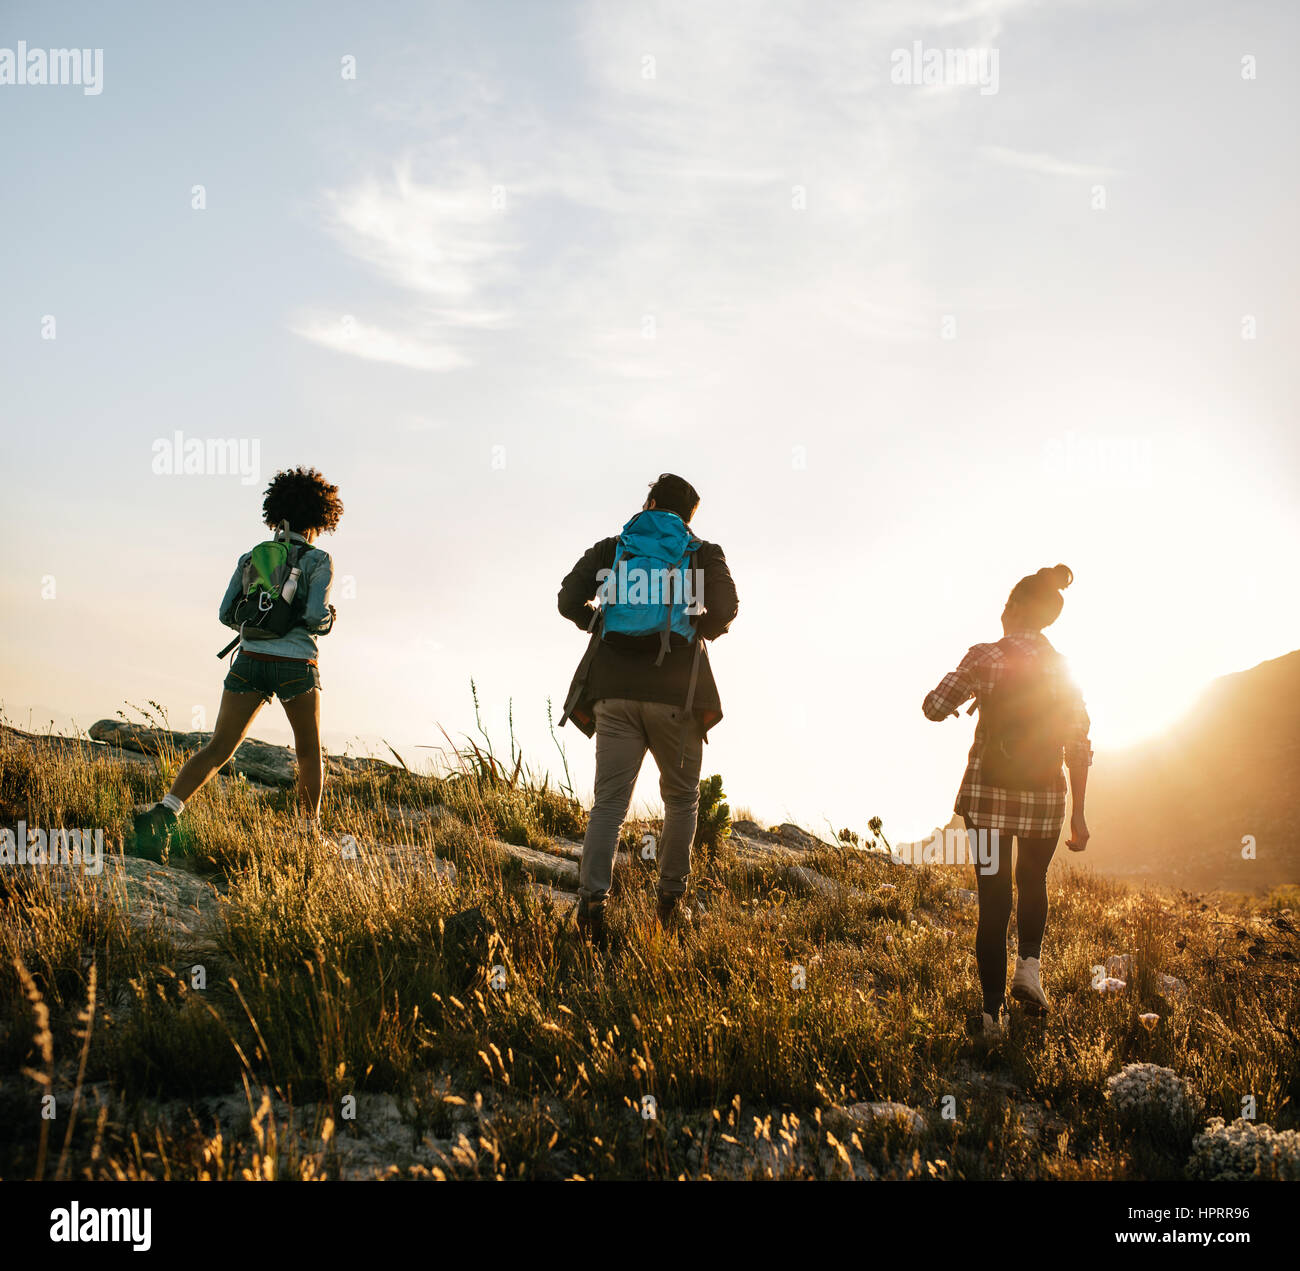 Rear view shot of young people hiking in nature on a summer day. Three young friends on a country walk. - Stock Image